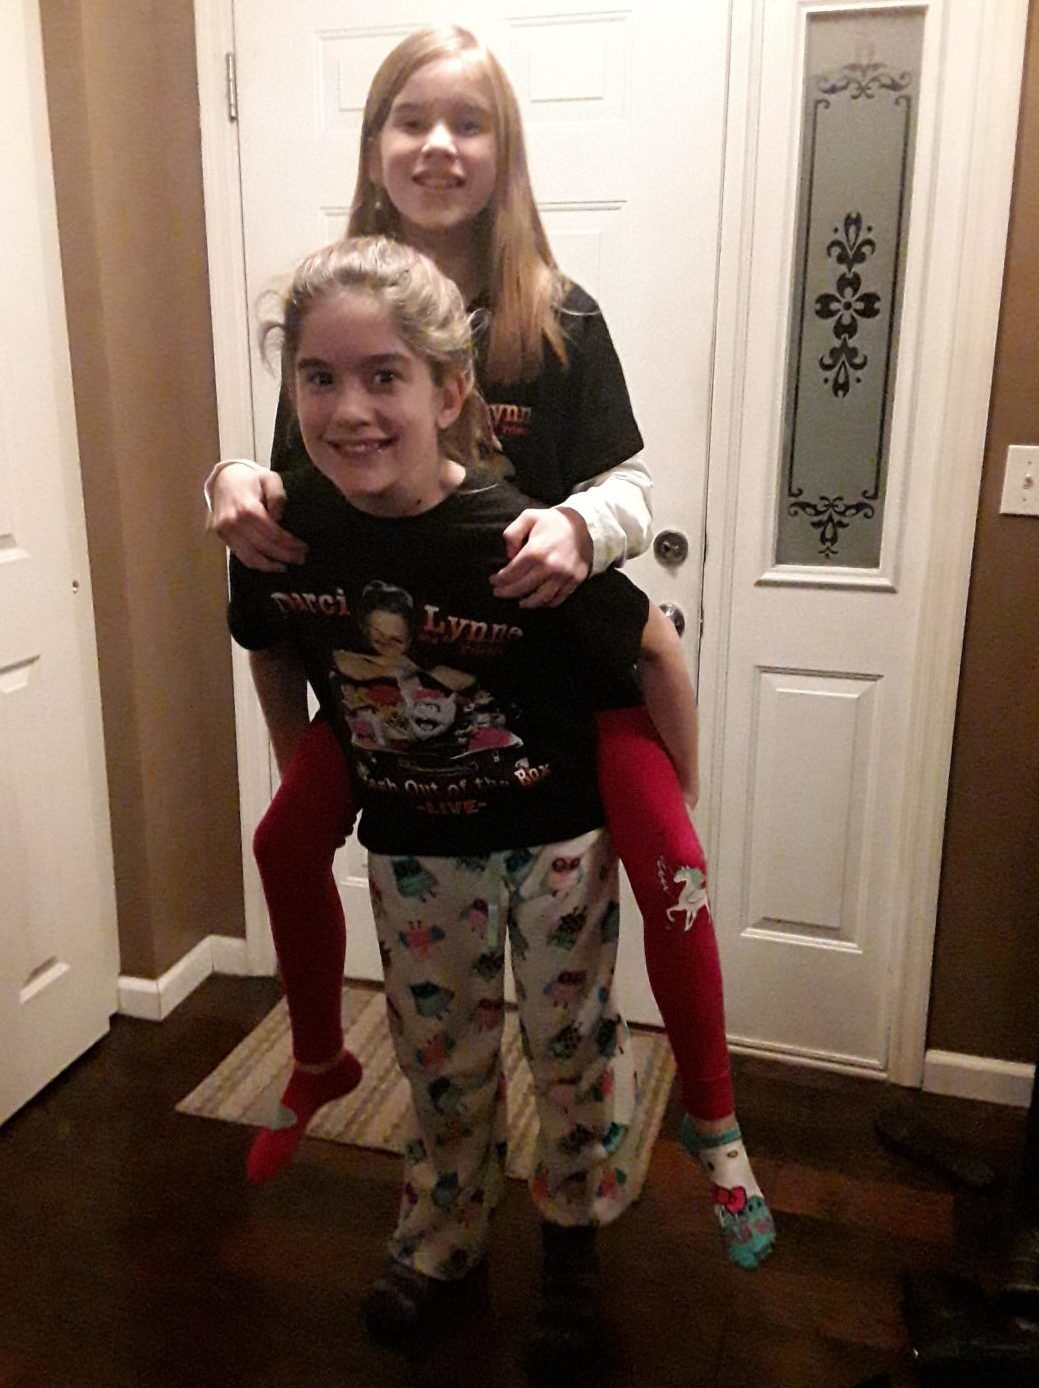 My little sisters Lydia and Madelyn and I went to see ventriloquist and America's Got Talent winner Darci Lynne Farmer. Madelyn begged endlessly for Dearci Lynne tickets and she just so happened to be the one my mom was struggling to buy for this Christmas.